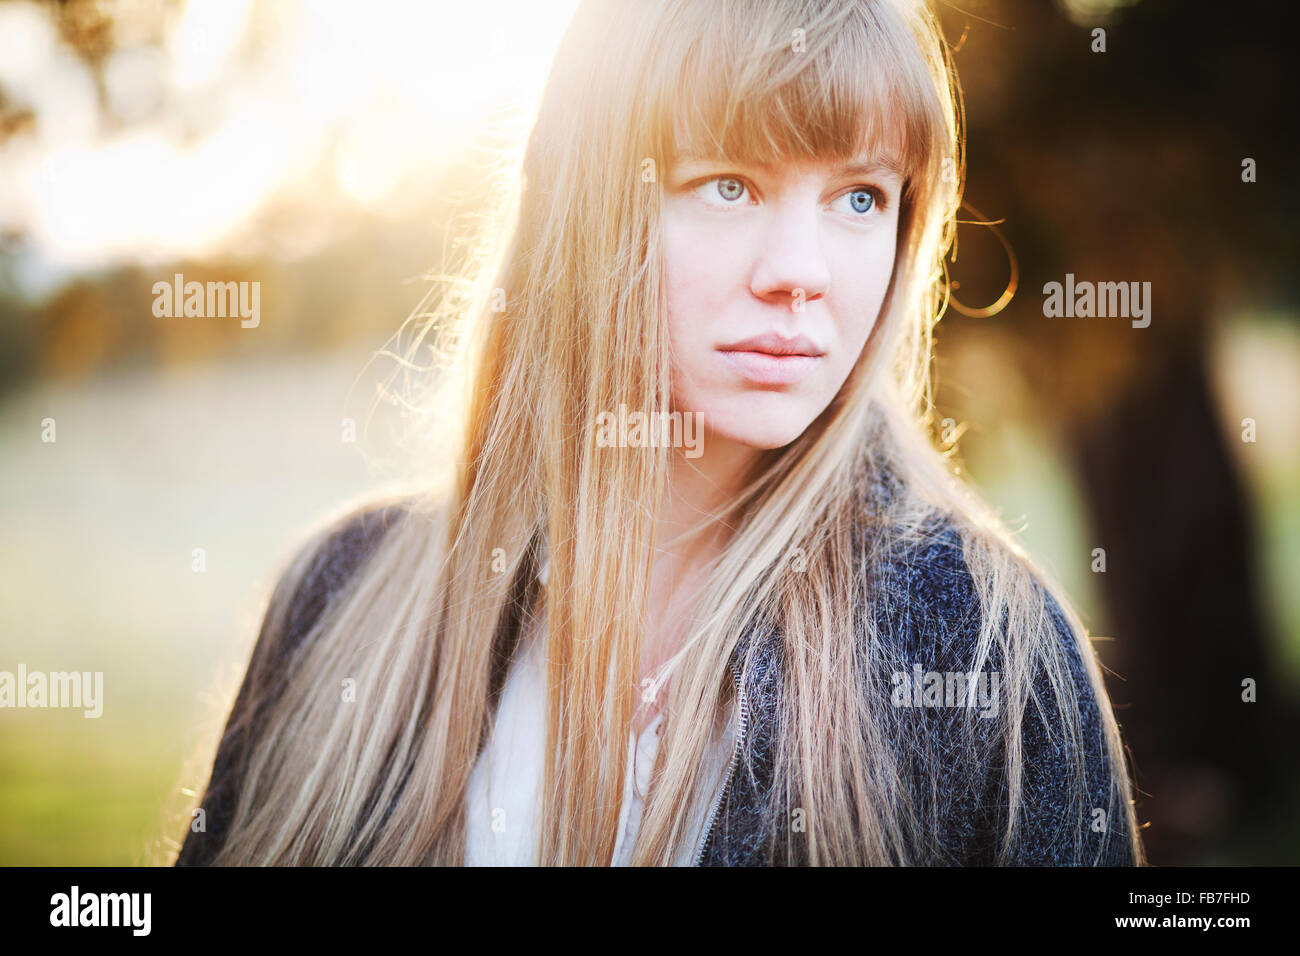 Troubled young woman looking off into the distance with the sun at her back - Stock Image